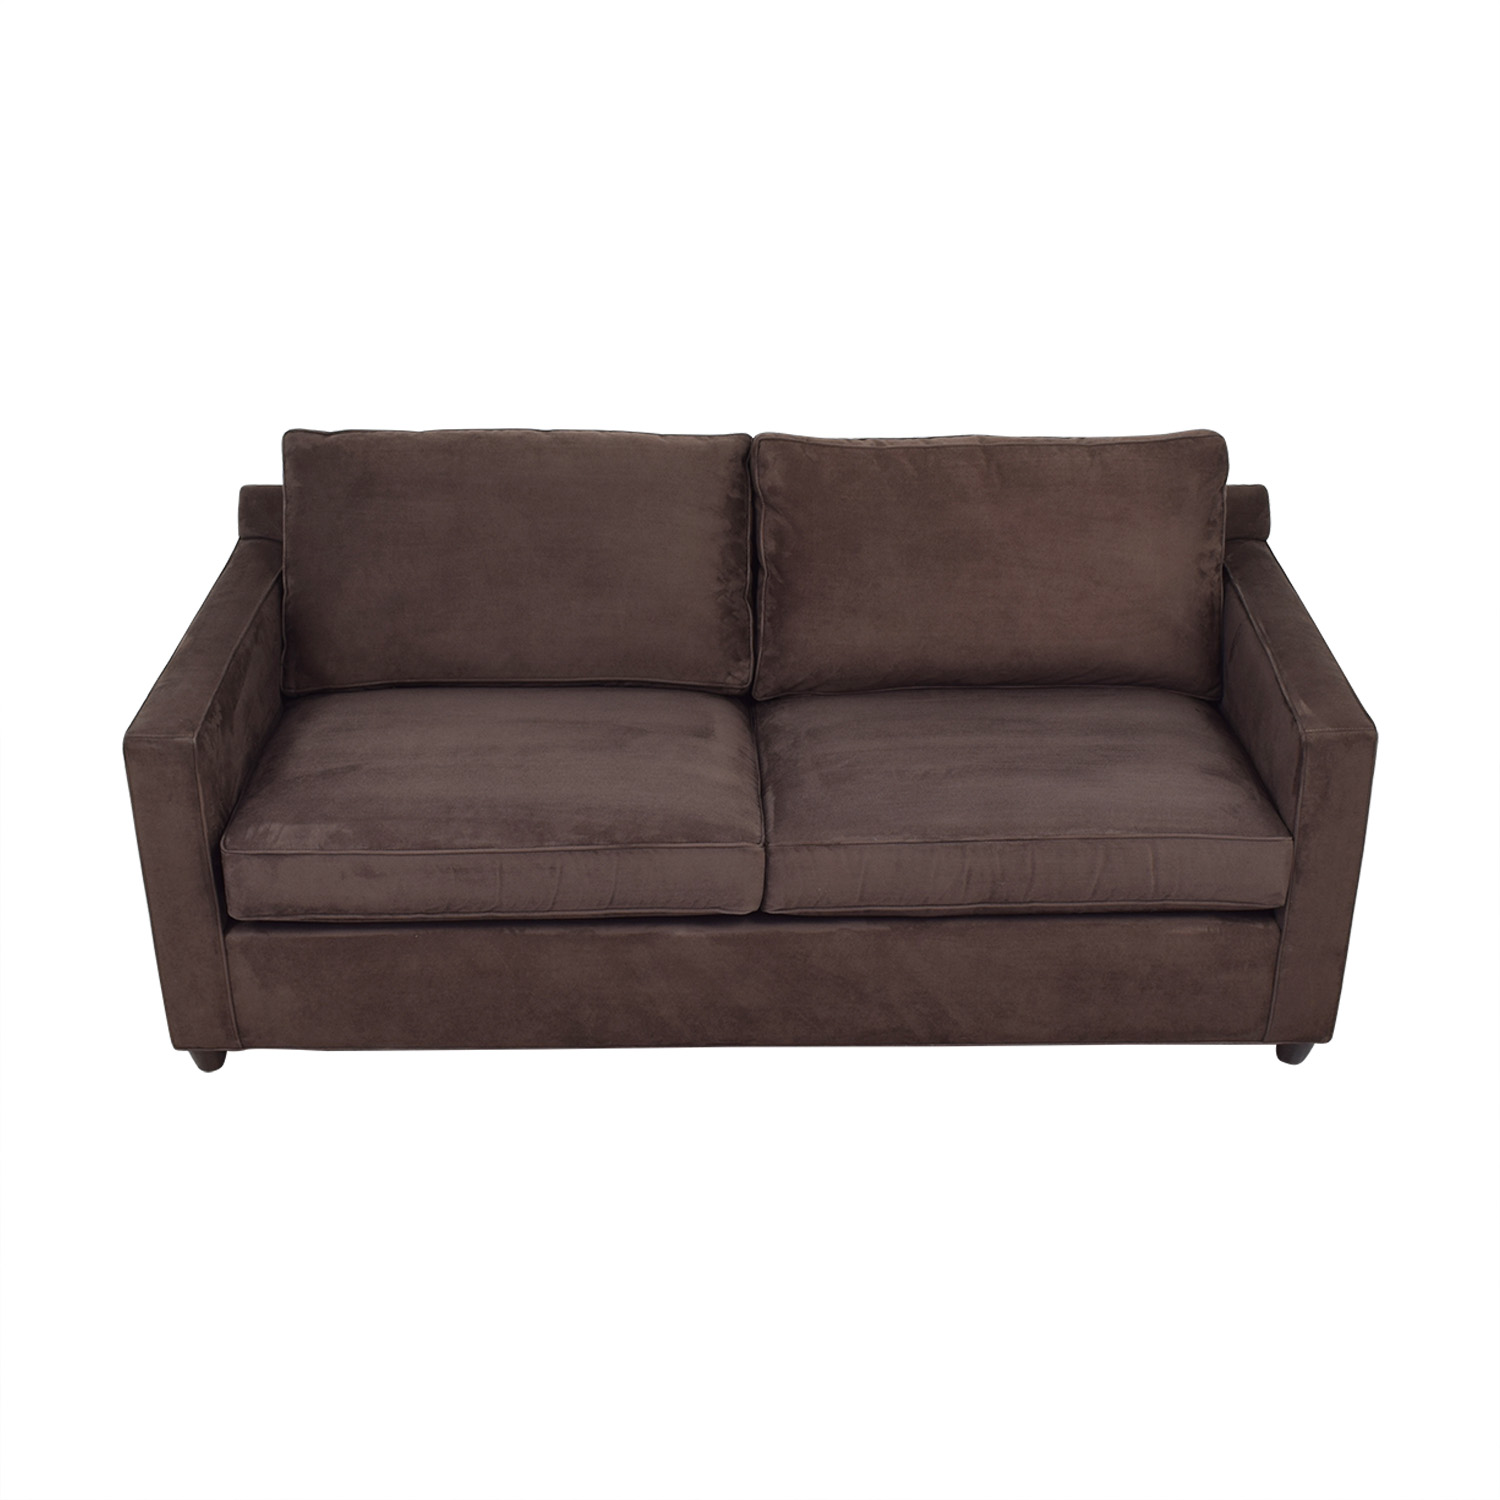 buy Crate & Barrel Sofa Crate & Barrel